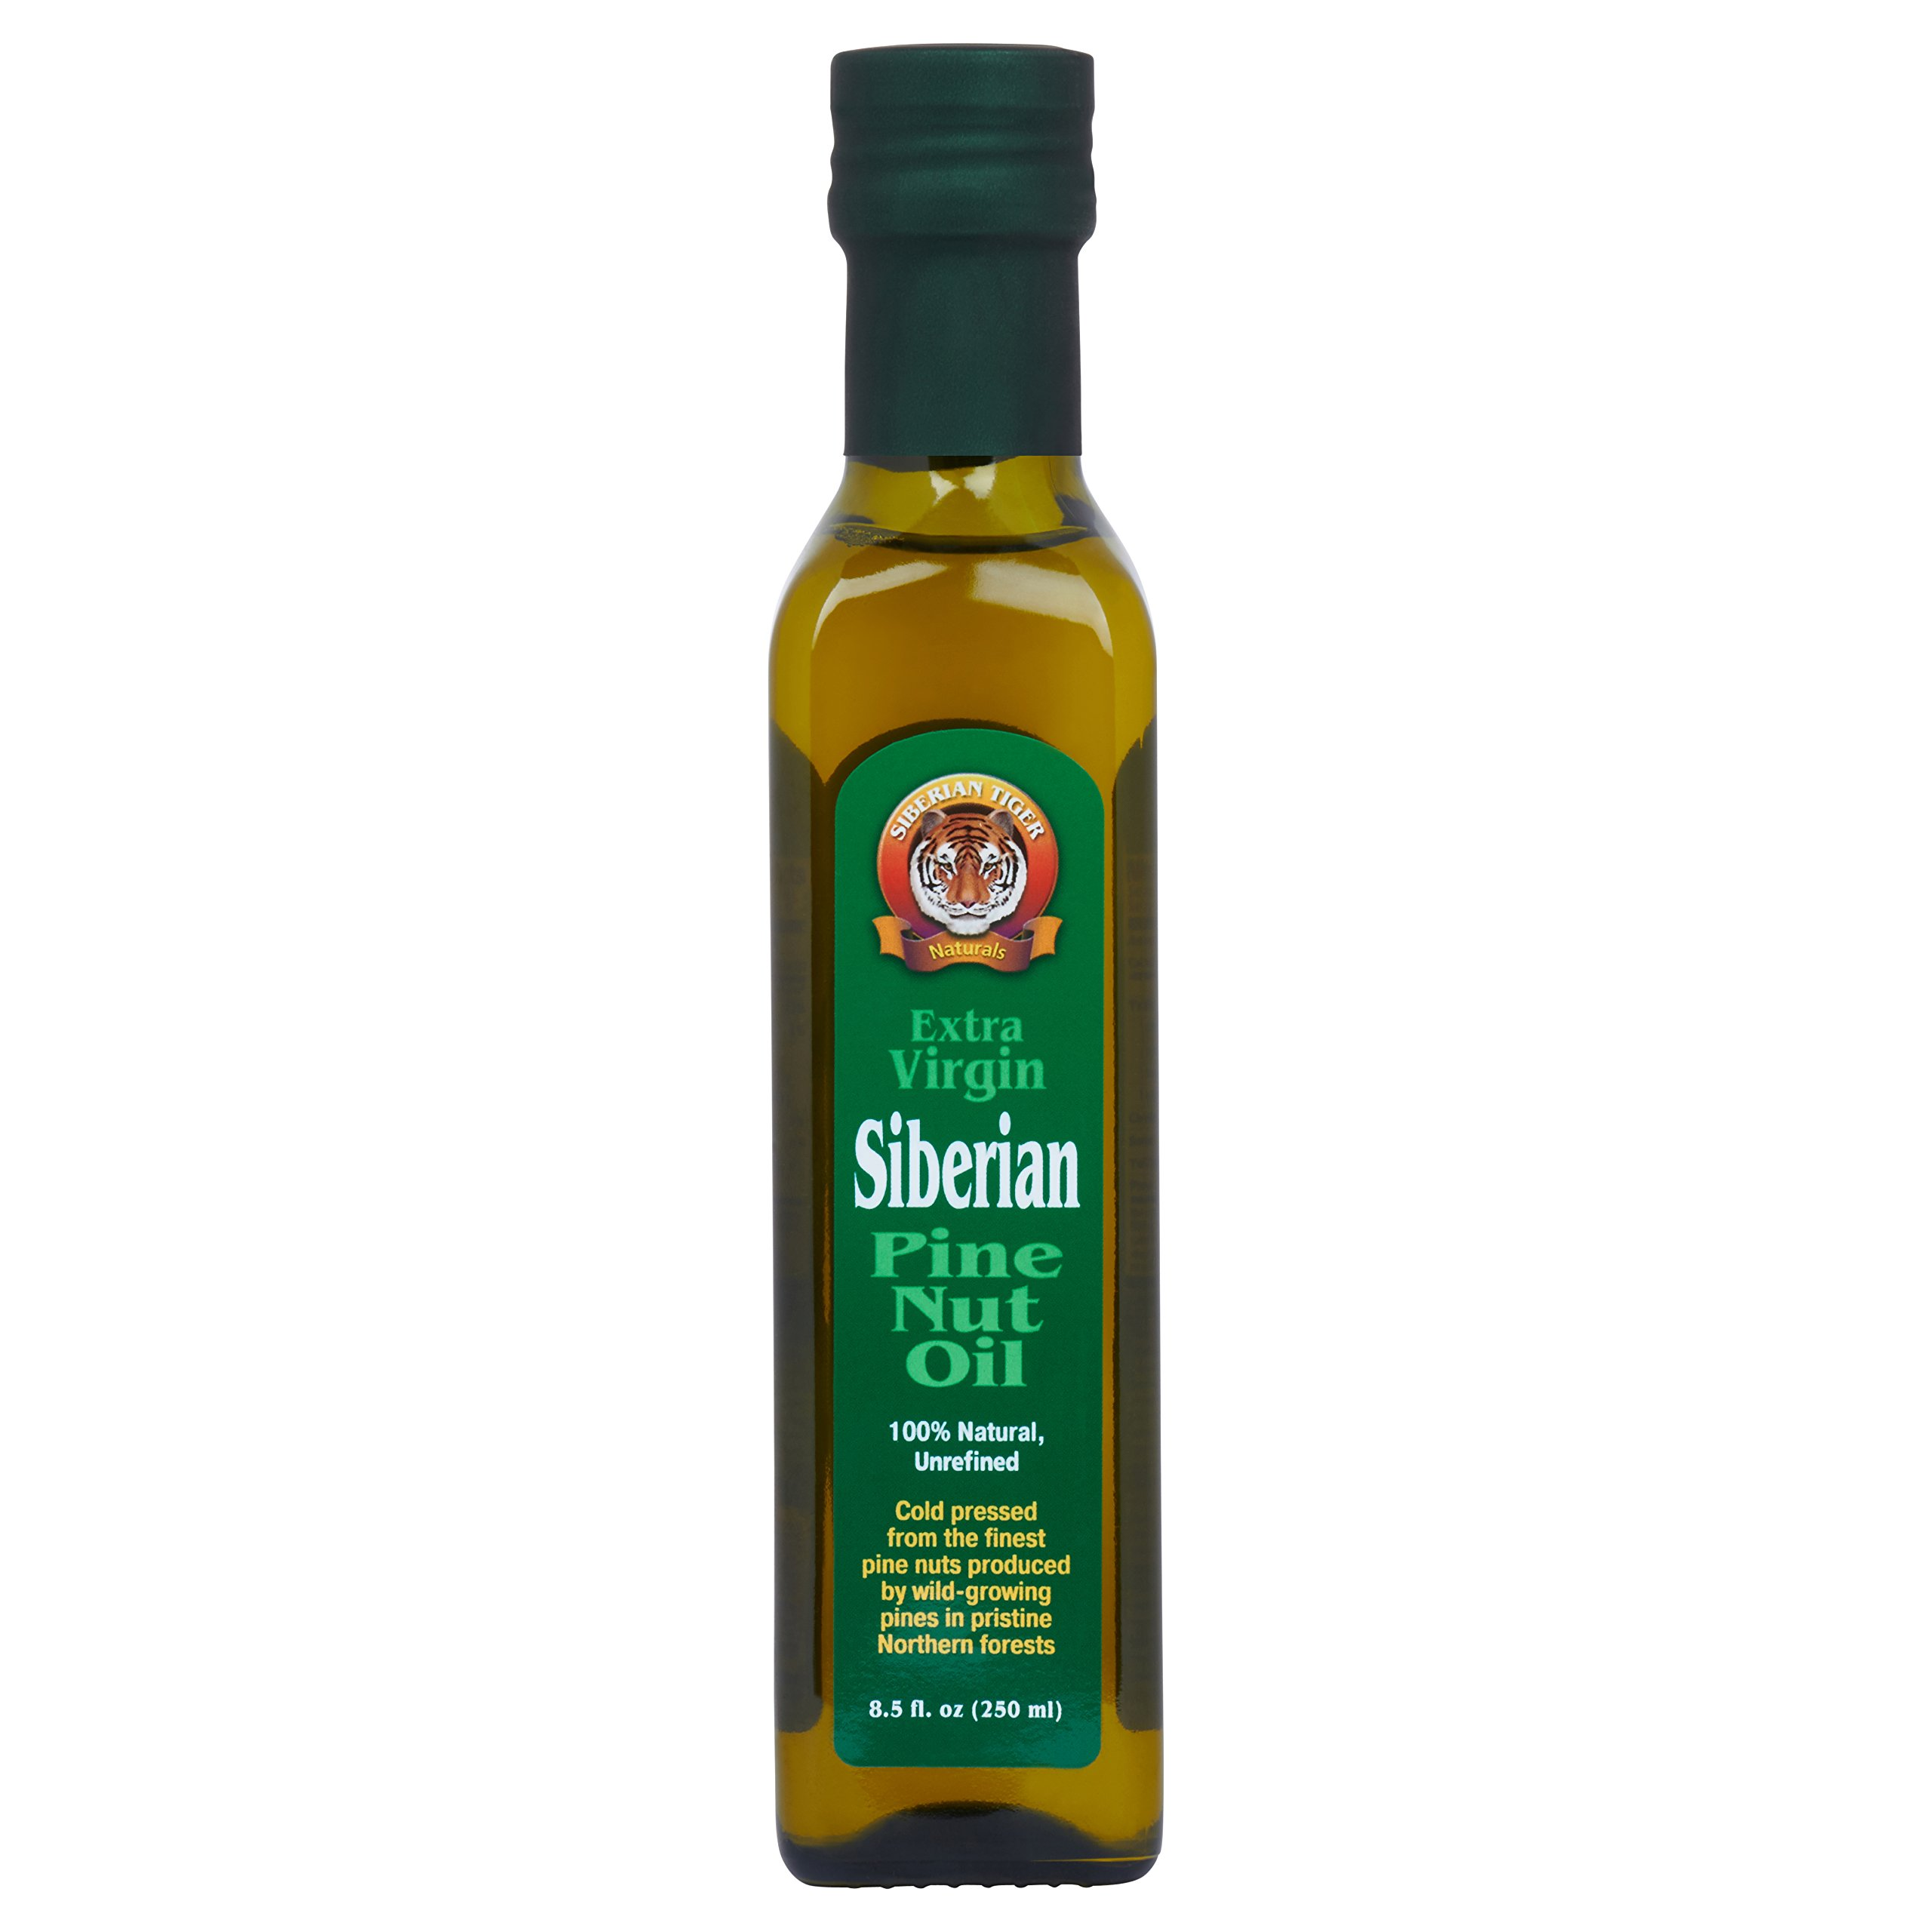 Extra Virgin Siberian Pine Nut Oil, 8.5 oz. Bottle - Premium Quality, Unrefined, 100% Natural - Benefits Overall Health & Aids Gastritis, Ulcers, Digestive Issues by Siberian Tiger Naturals